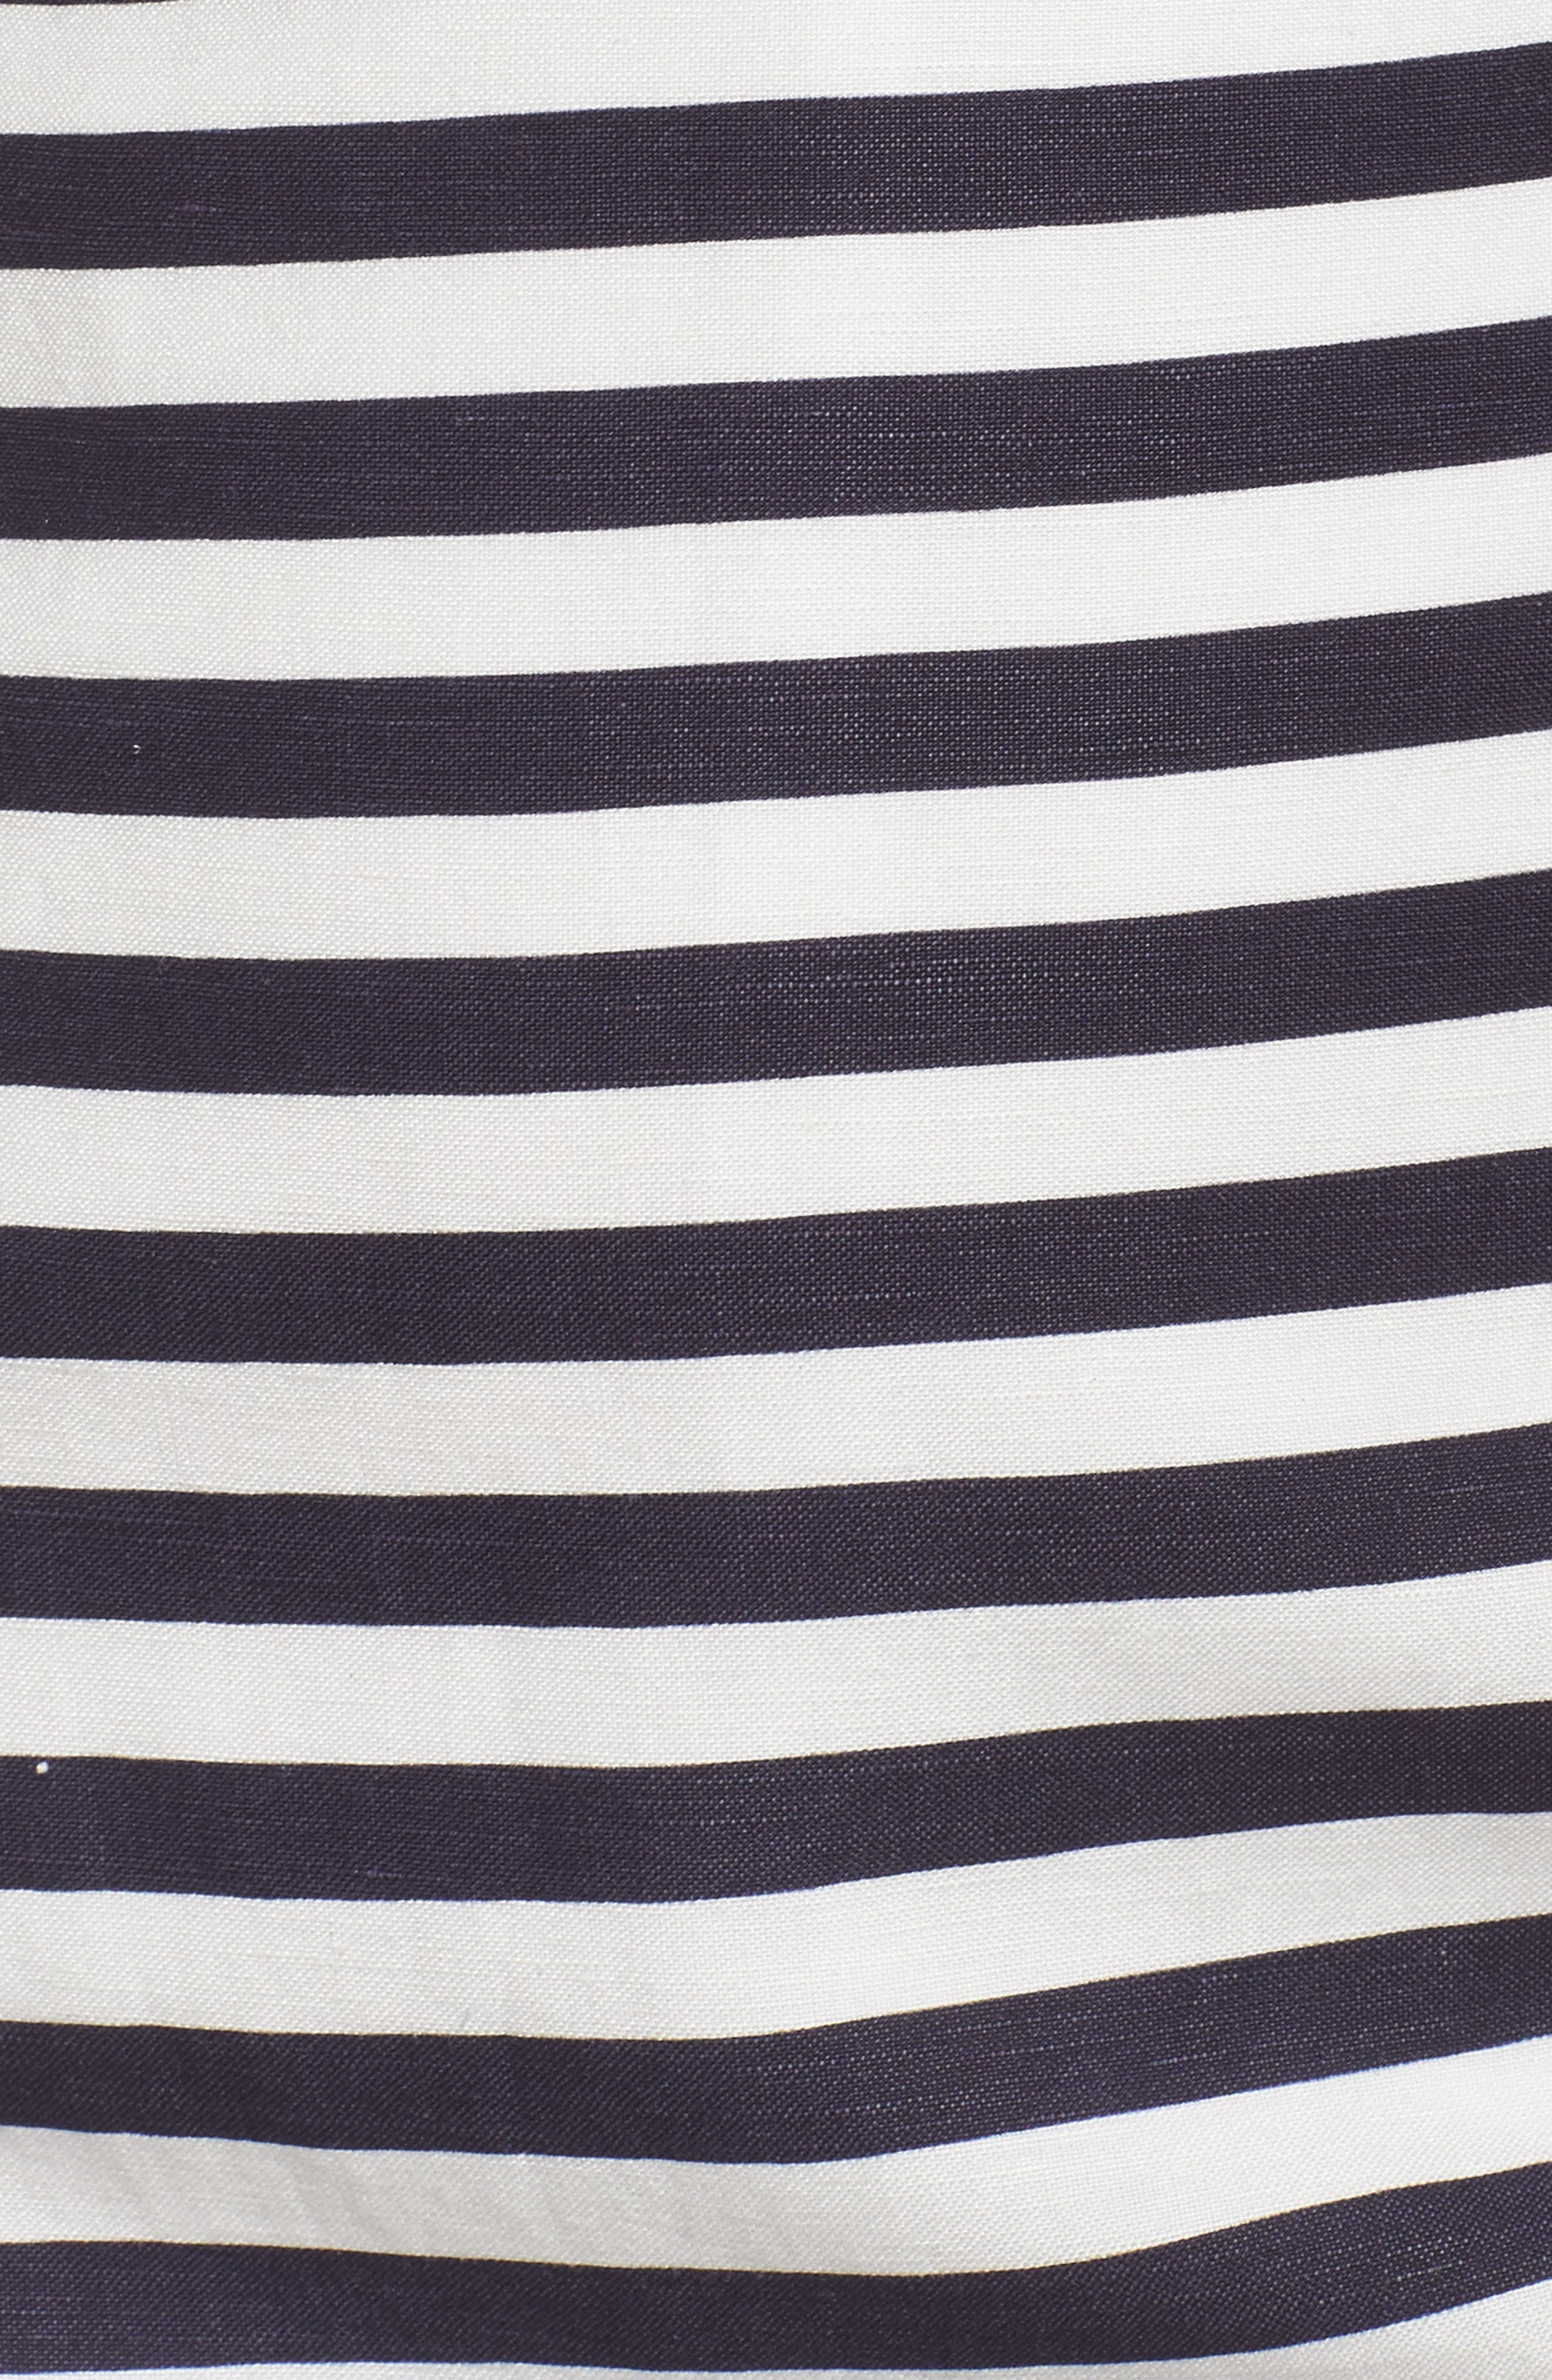 Stripe A-Line Dress,                             Alternate thumbnail 5, color,                             Navy/ White